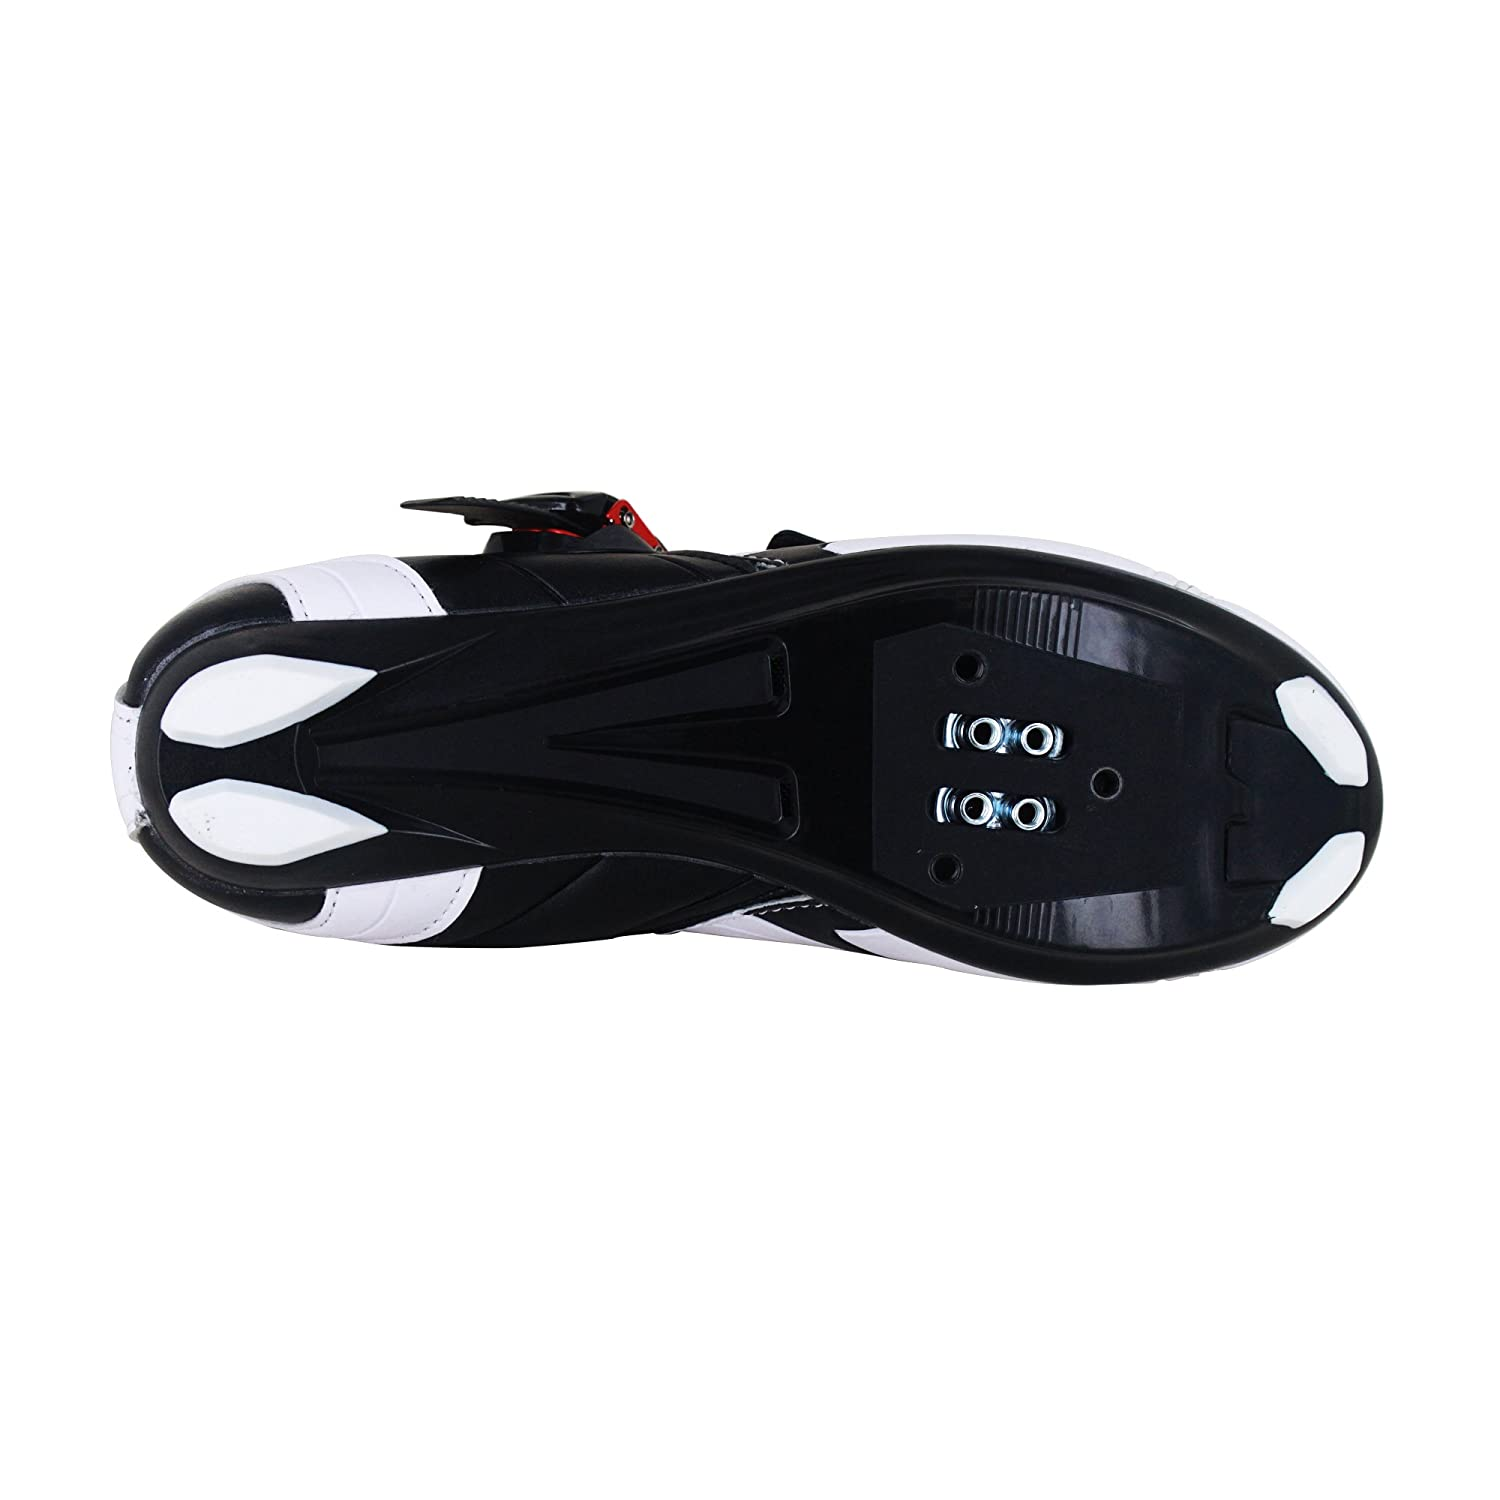 Zol Centurion Plus 3-Bolt Road Cycling Shoes and SPD Compatible